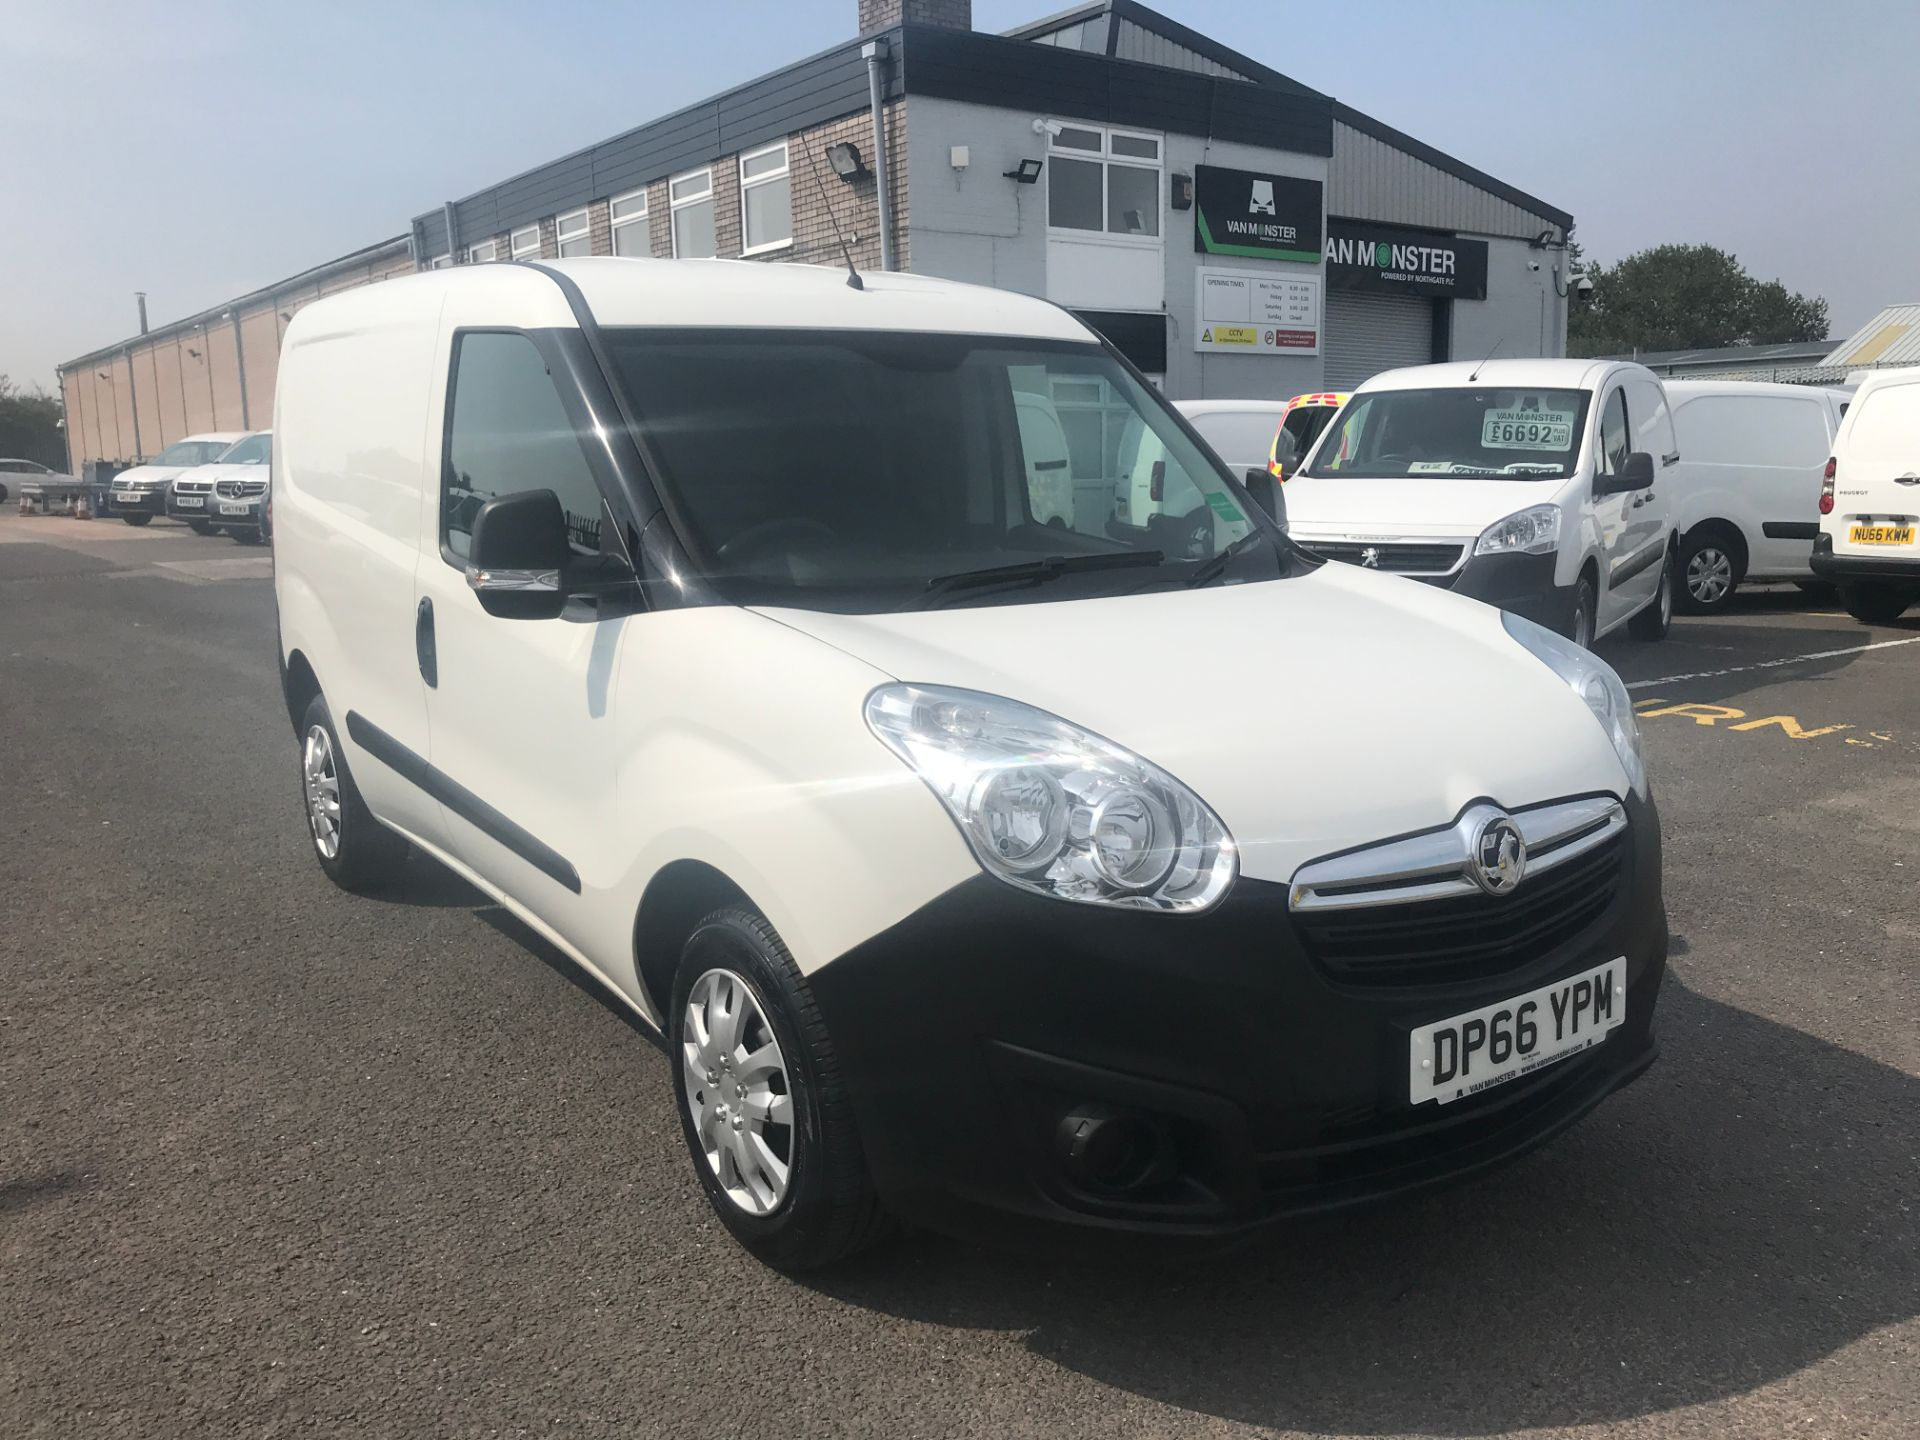 2016 Vauxhall Combo 2000 L1 H1 75PS EURO 5 (DP66YPM)